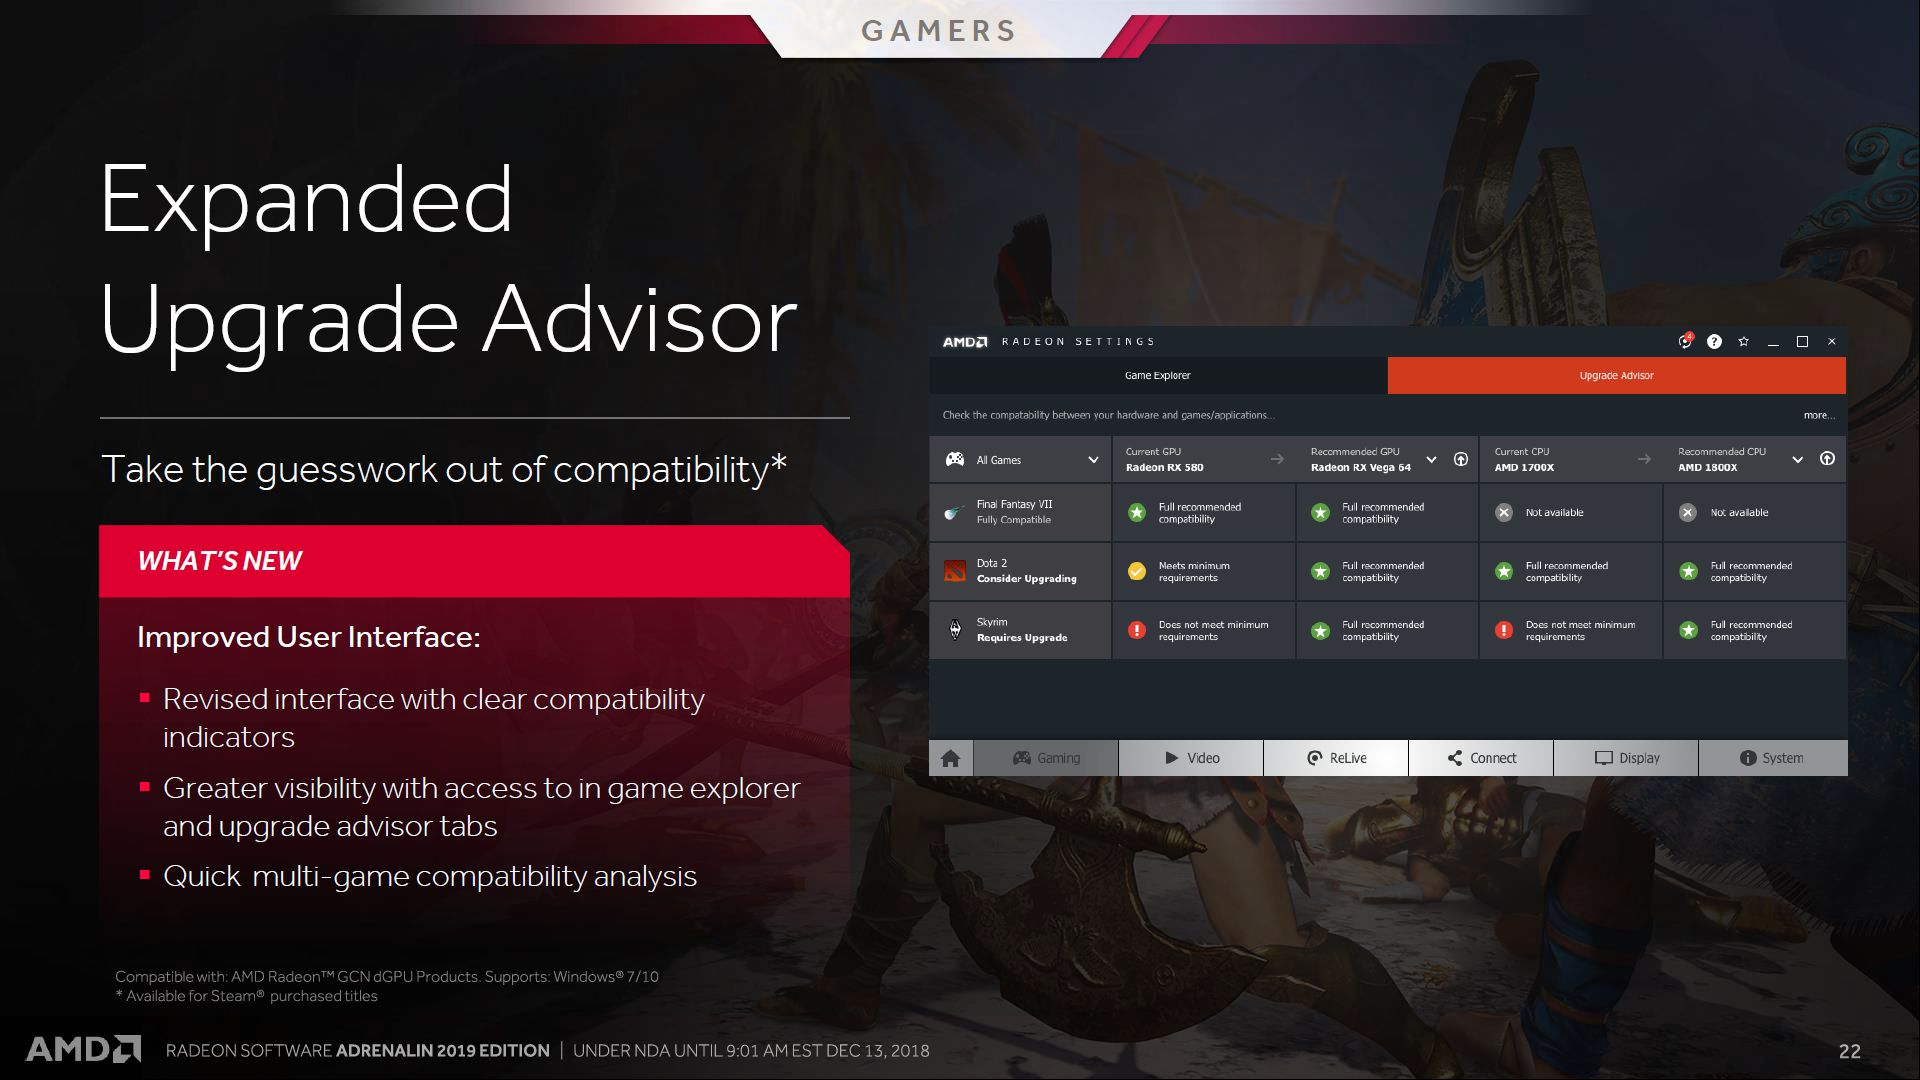 AMD Radeon Software Adrenalin 2019 Edition: Of Improved Overlays And